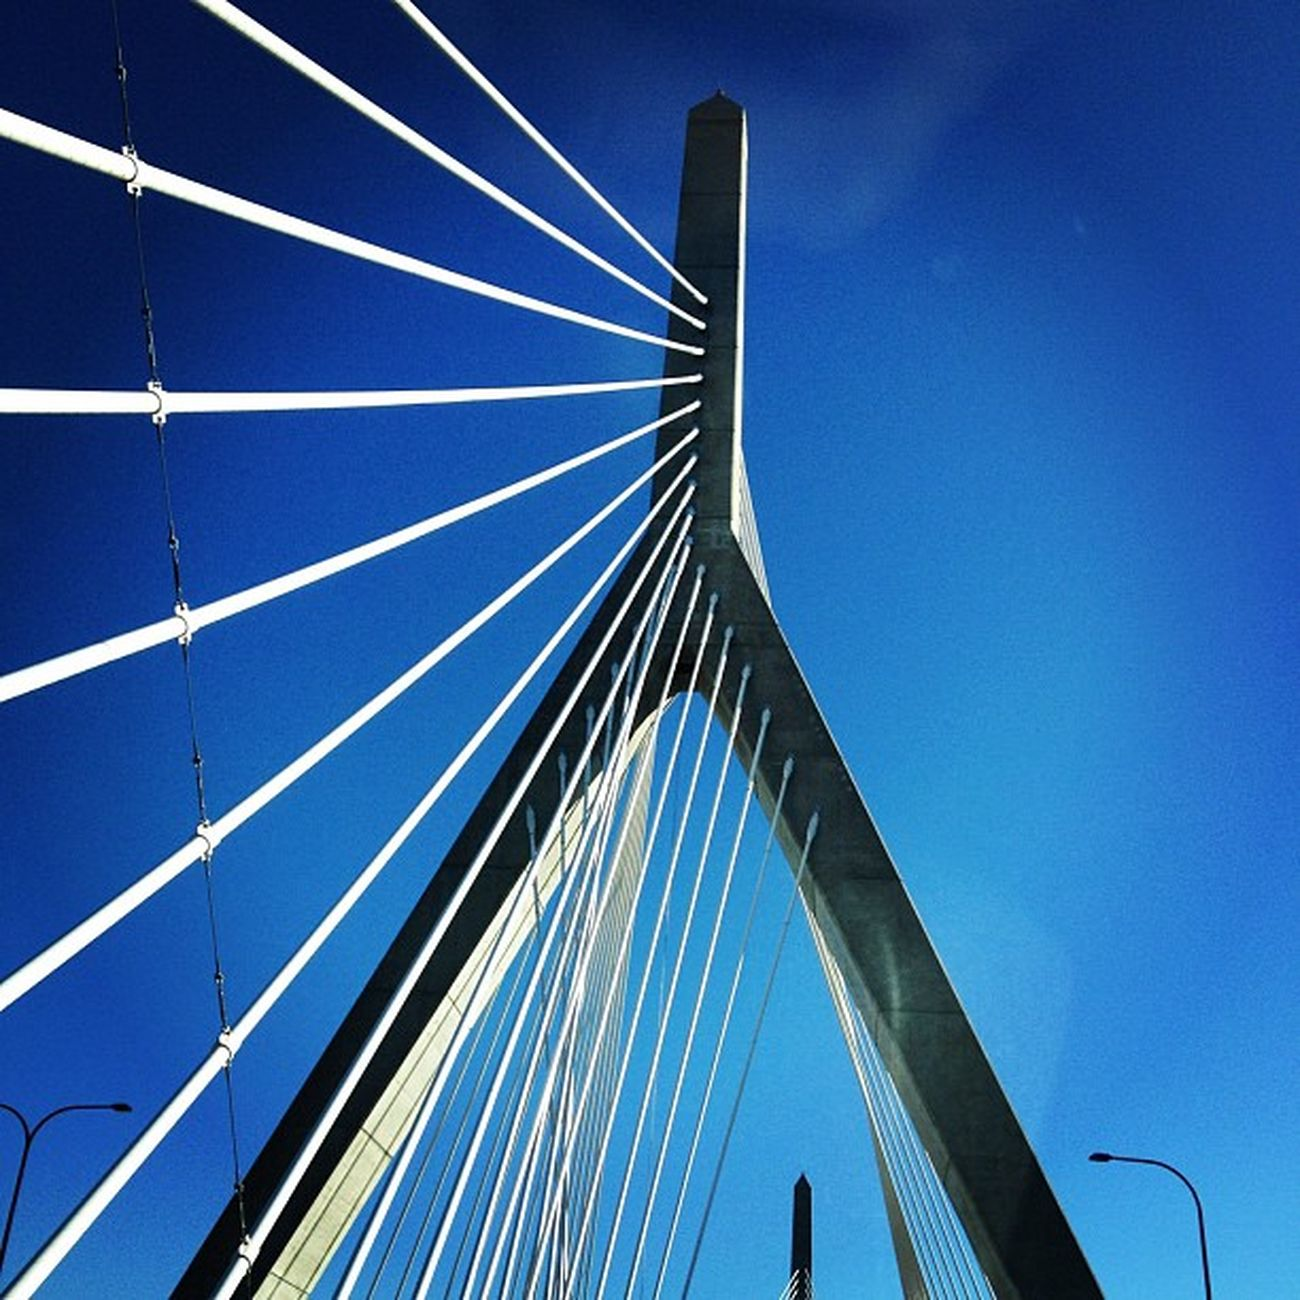 She makes #Boston pretty. #bridge Architecture Bridge Highway Travel Road Suspended Boston Landmark Beantown Massachusetts Bigdig